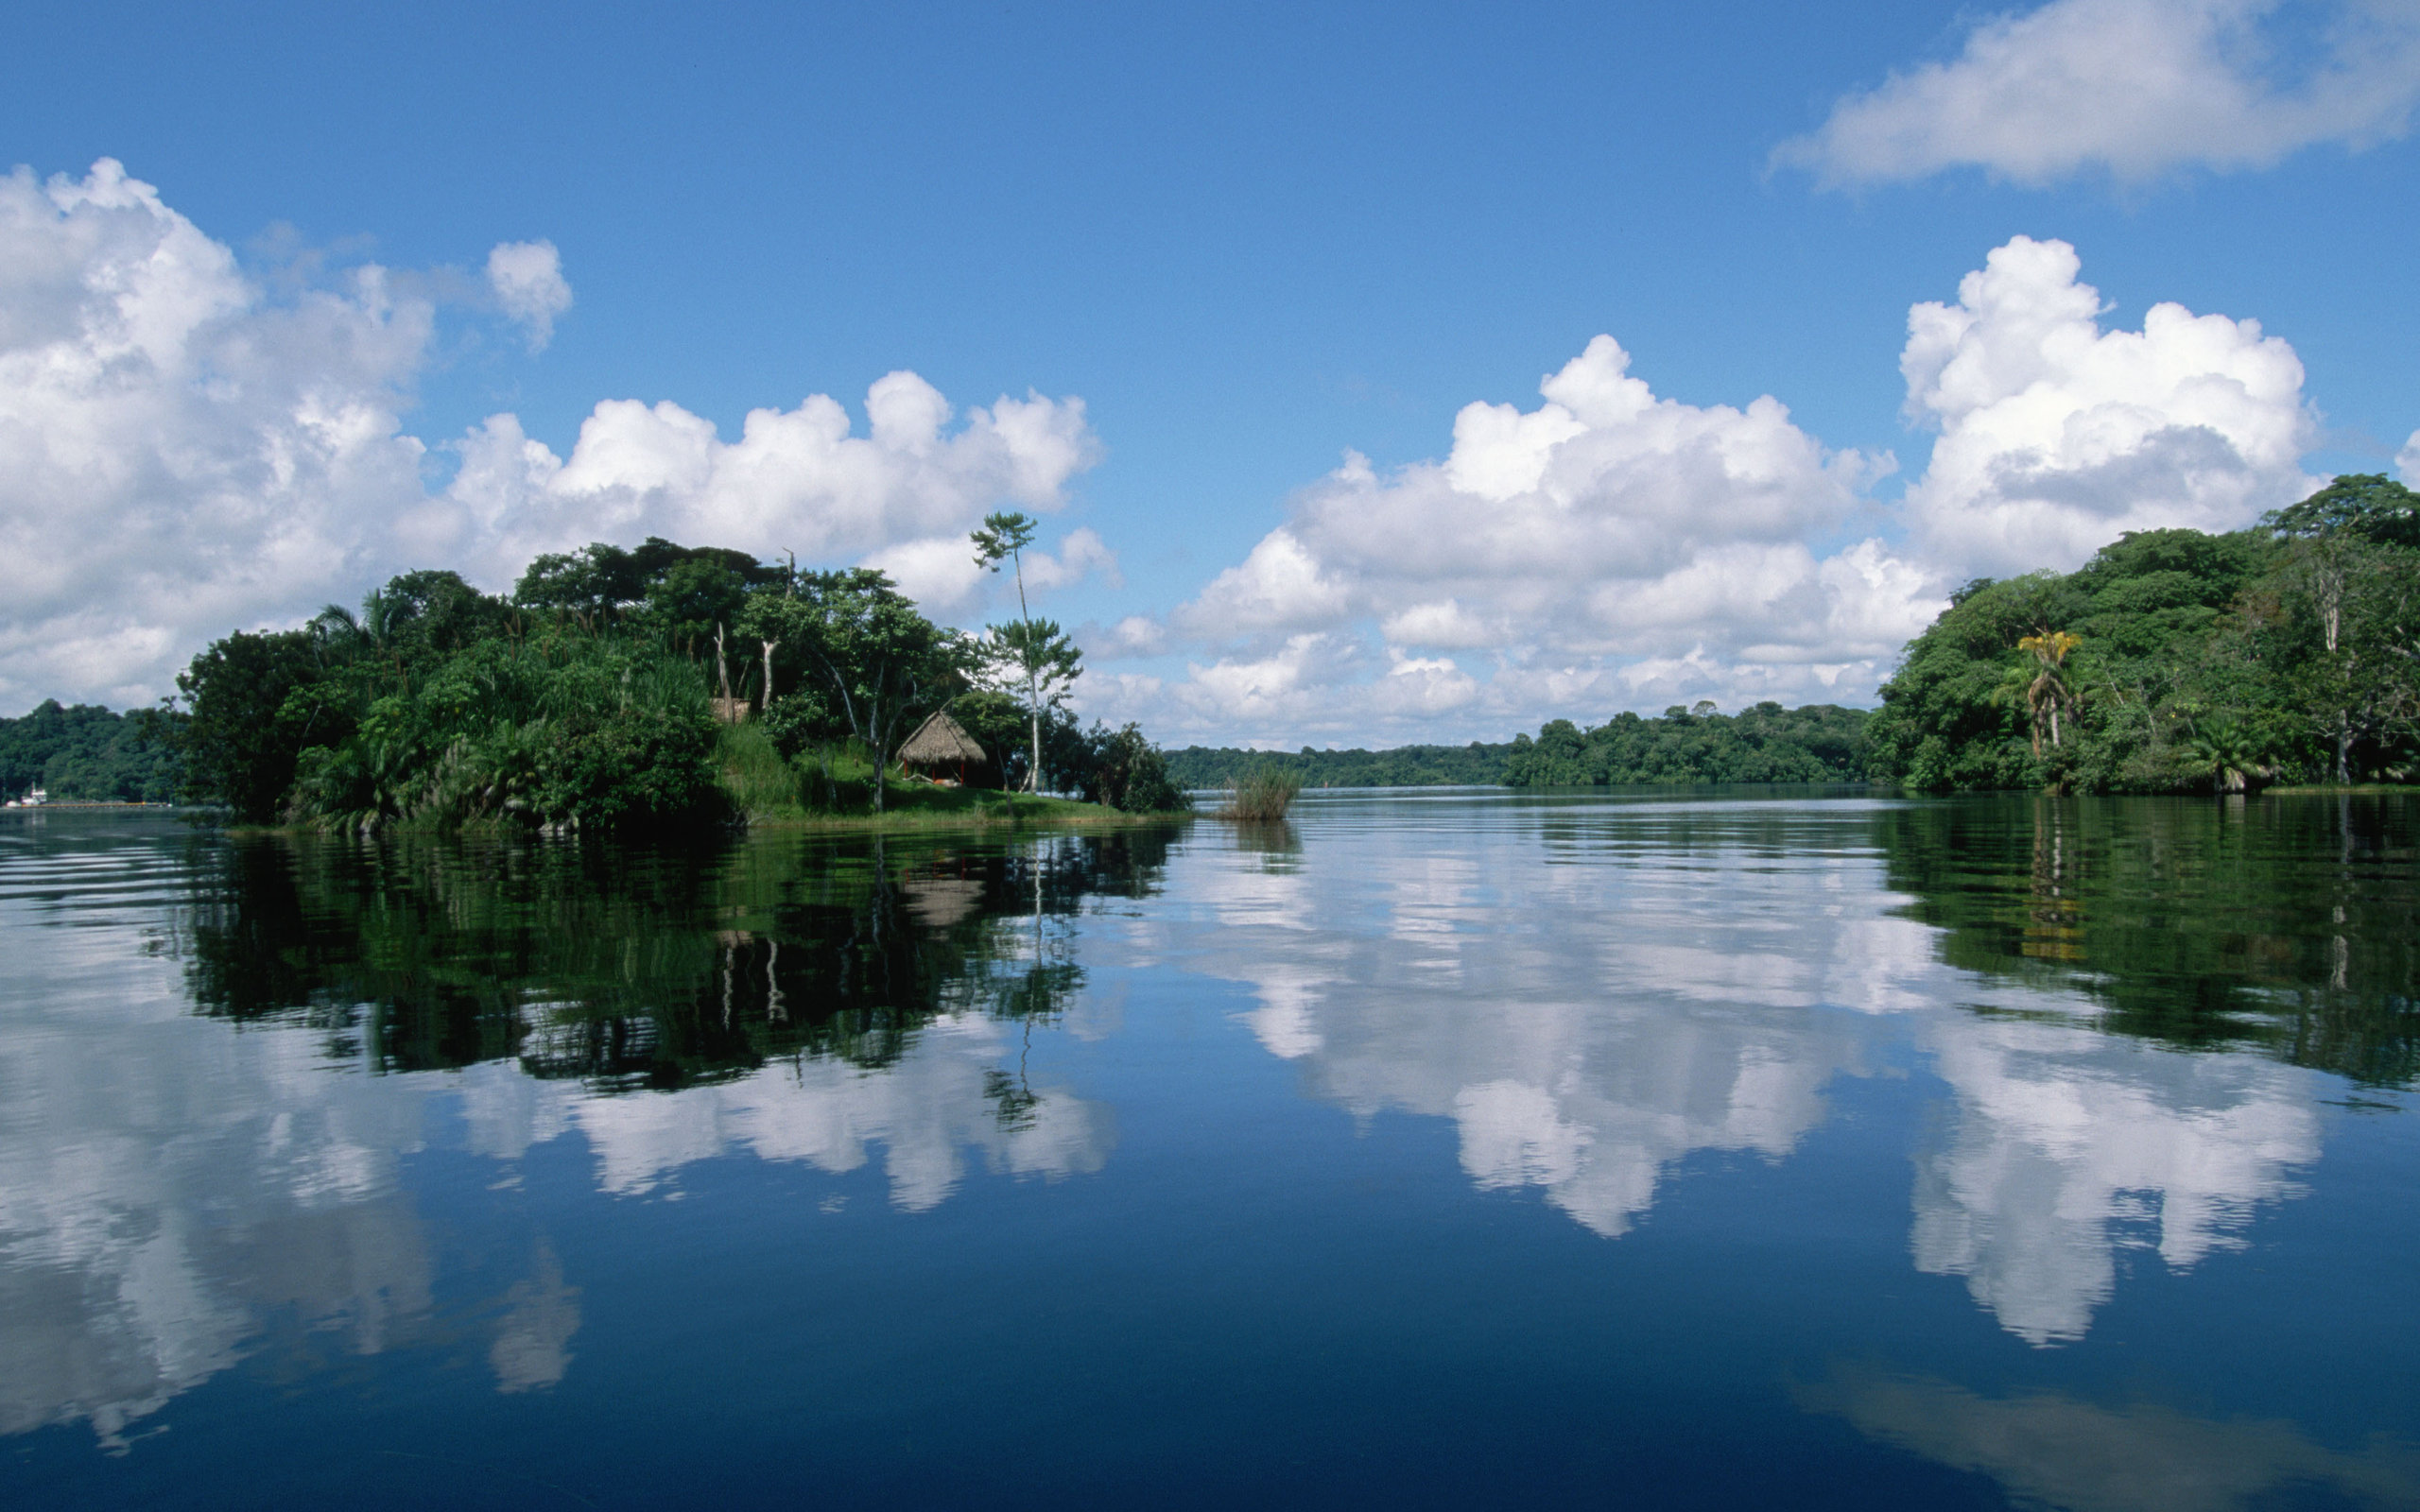 R veillon no rio amazonas emo7ion tour - Amazon wallpaper hd ...